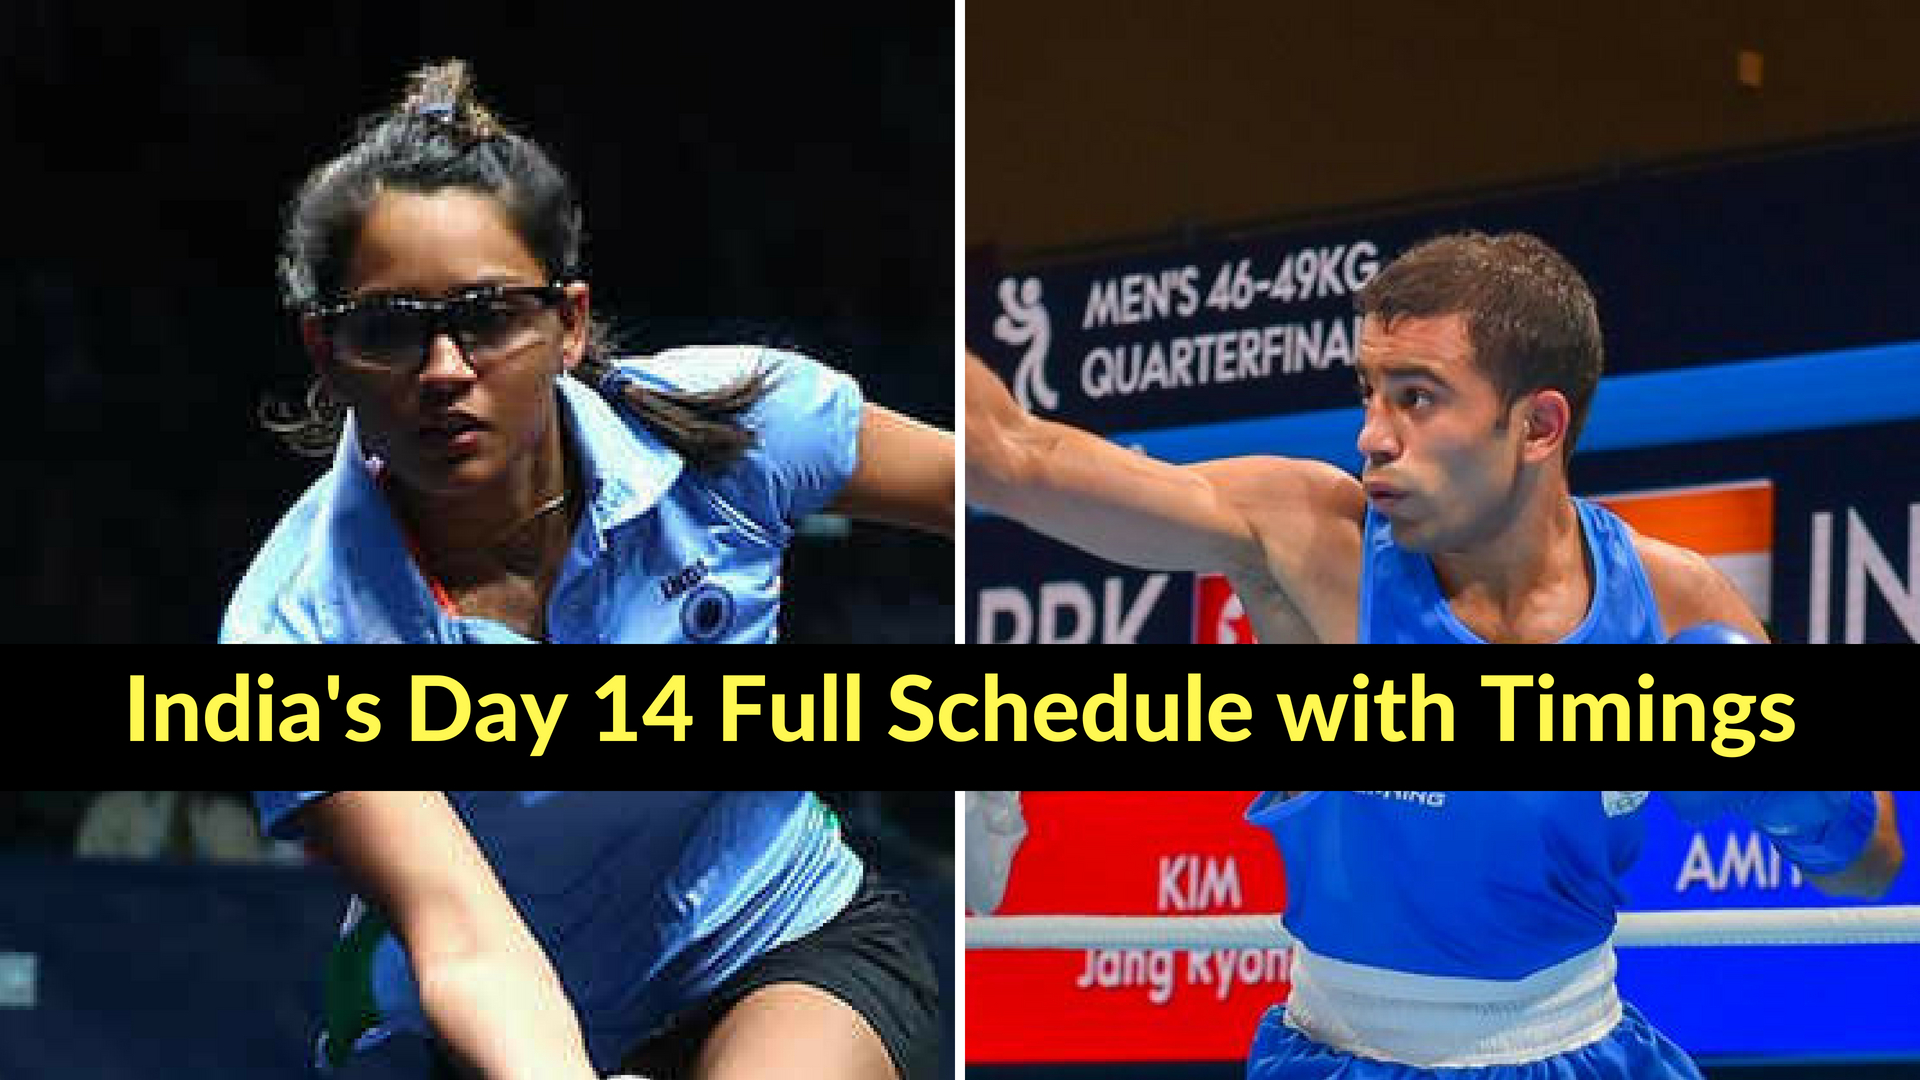 India's Day 14 Full Schedule with Timings (2)